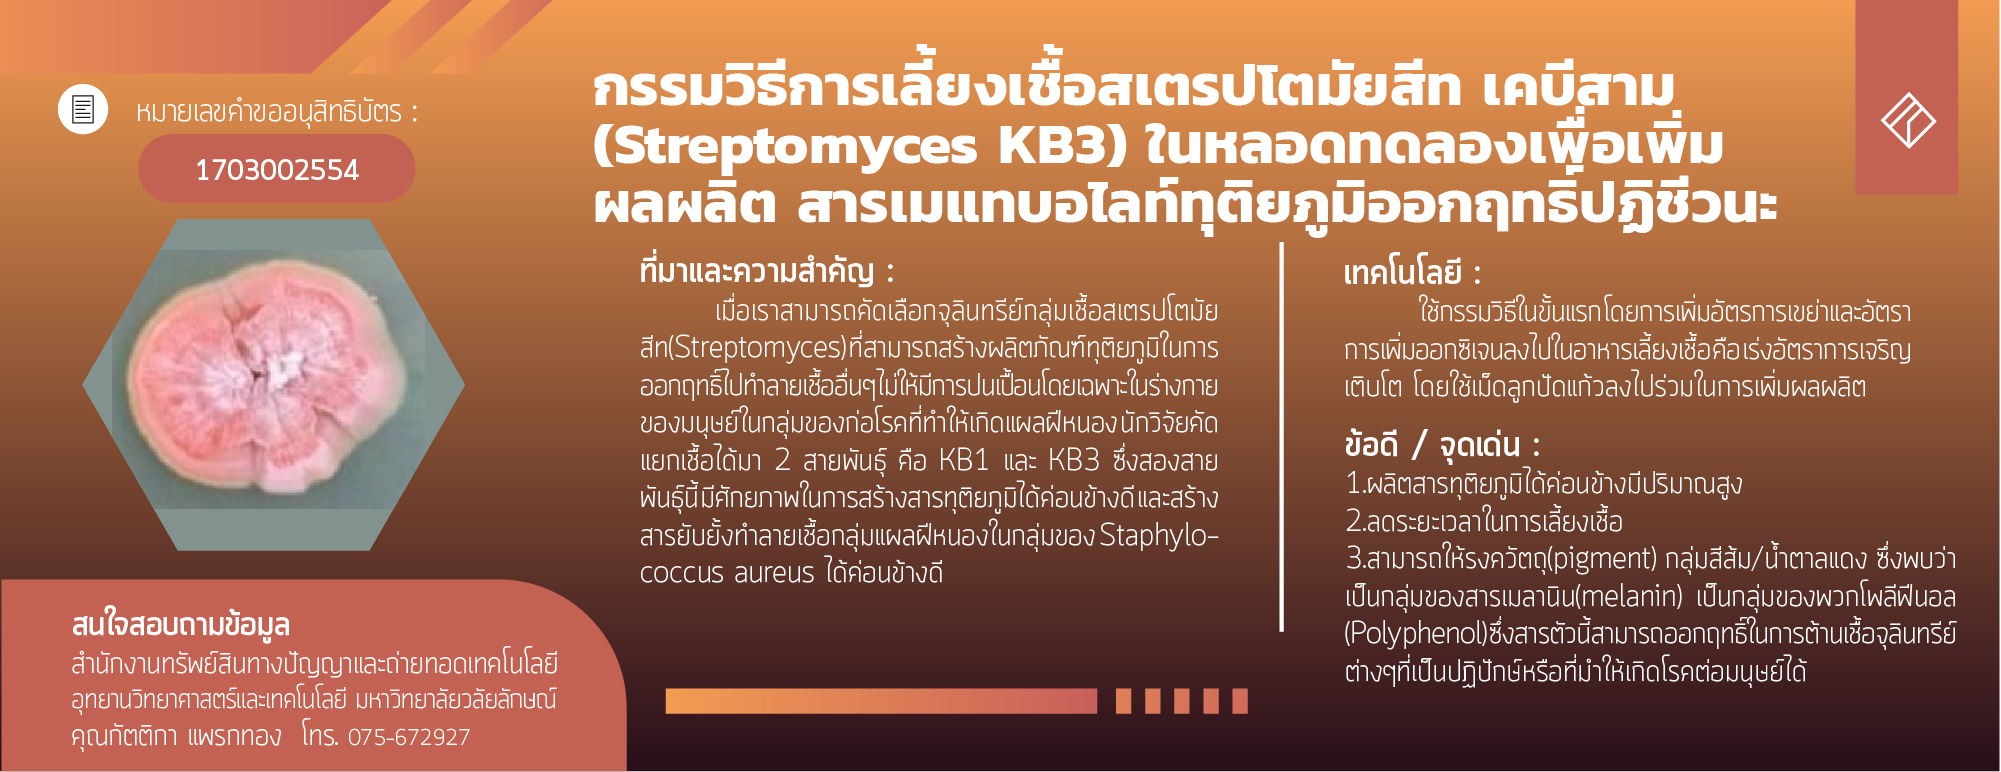 The process for in vitro culture Streptomycetes KB3 to increase productivity of secondary metabolites act as antibiotic active substance